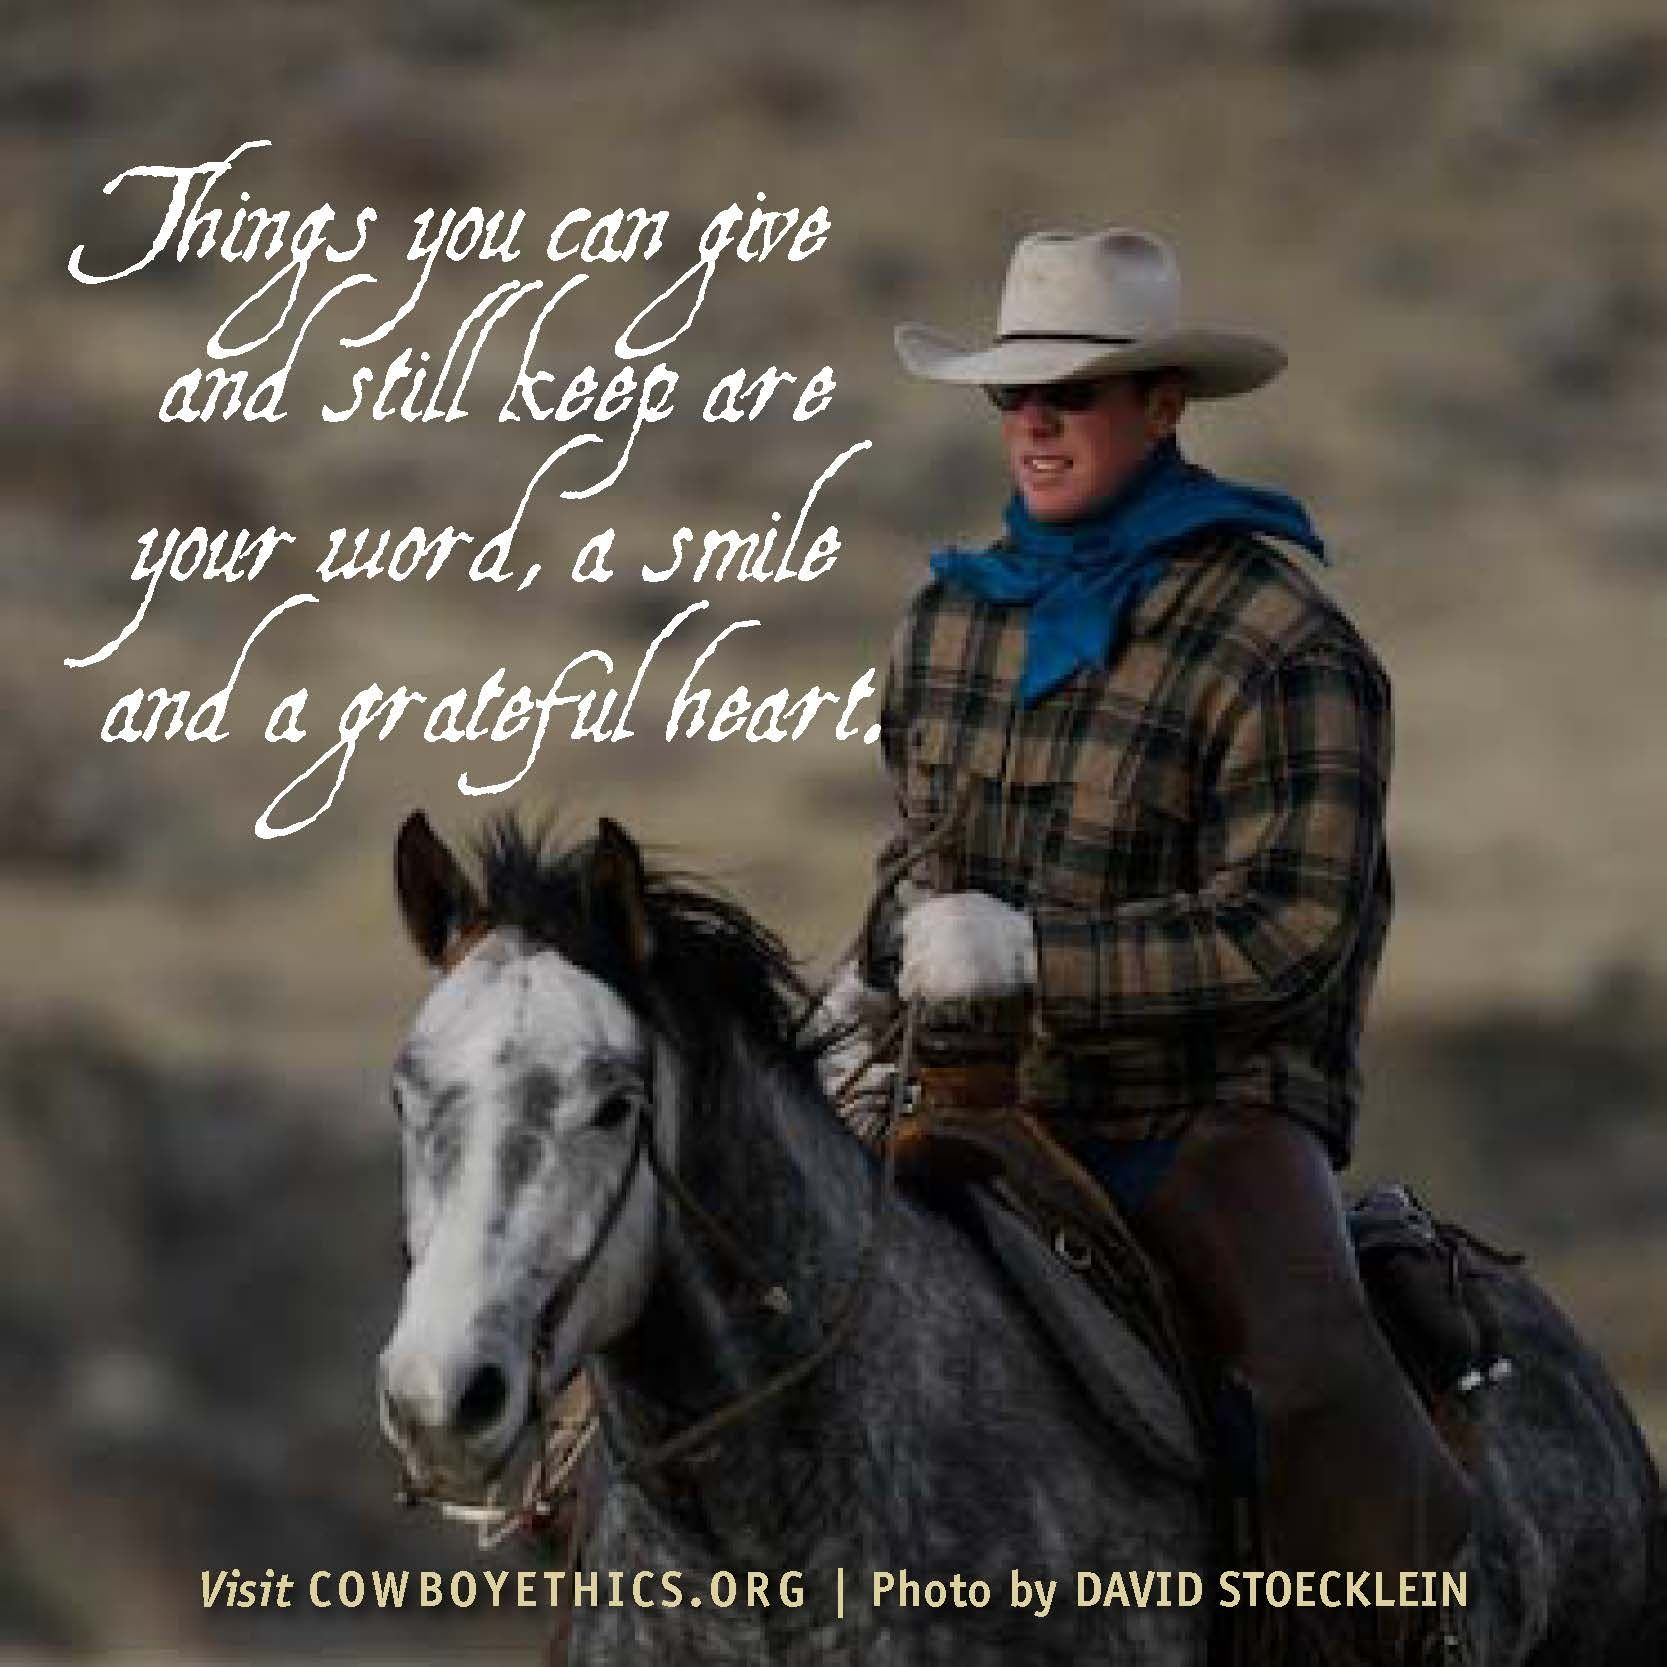 Cowboys Cowgirls Smile Grateful Heart Wwwcowboyethicsorg